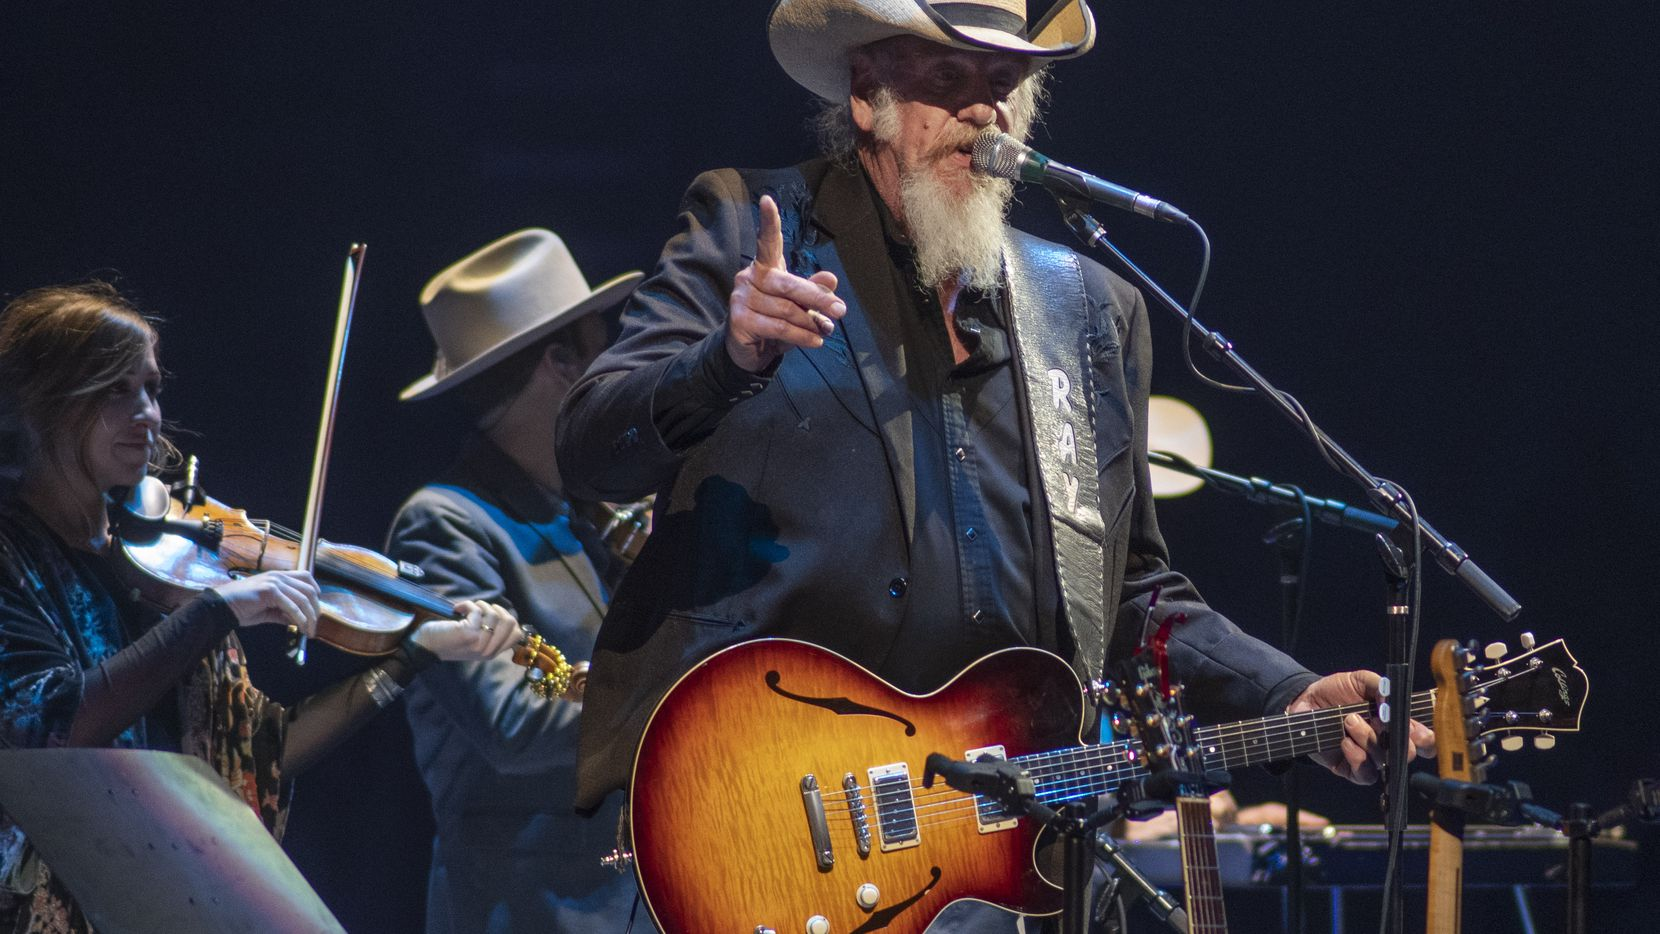 Ray Benson and his bandmates in Asleep at the Wheel will perform a virtual concert on Friday. The 69-year-old singer-guitarist has overcome a COVID-19 infection and says he's extra cautious about the virus that's killed more than 600,000 people worldwide.